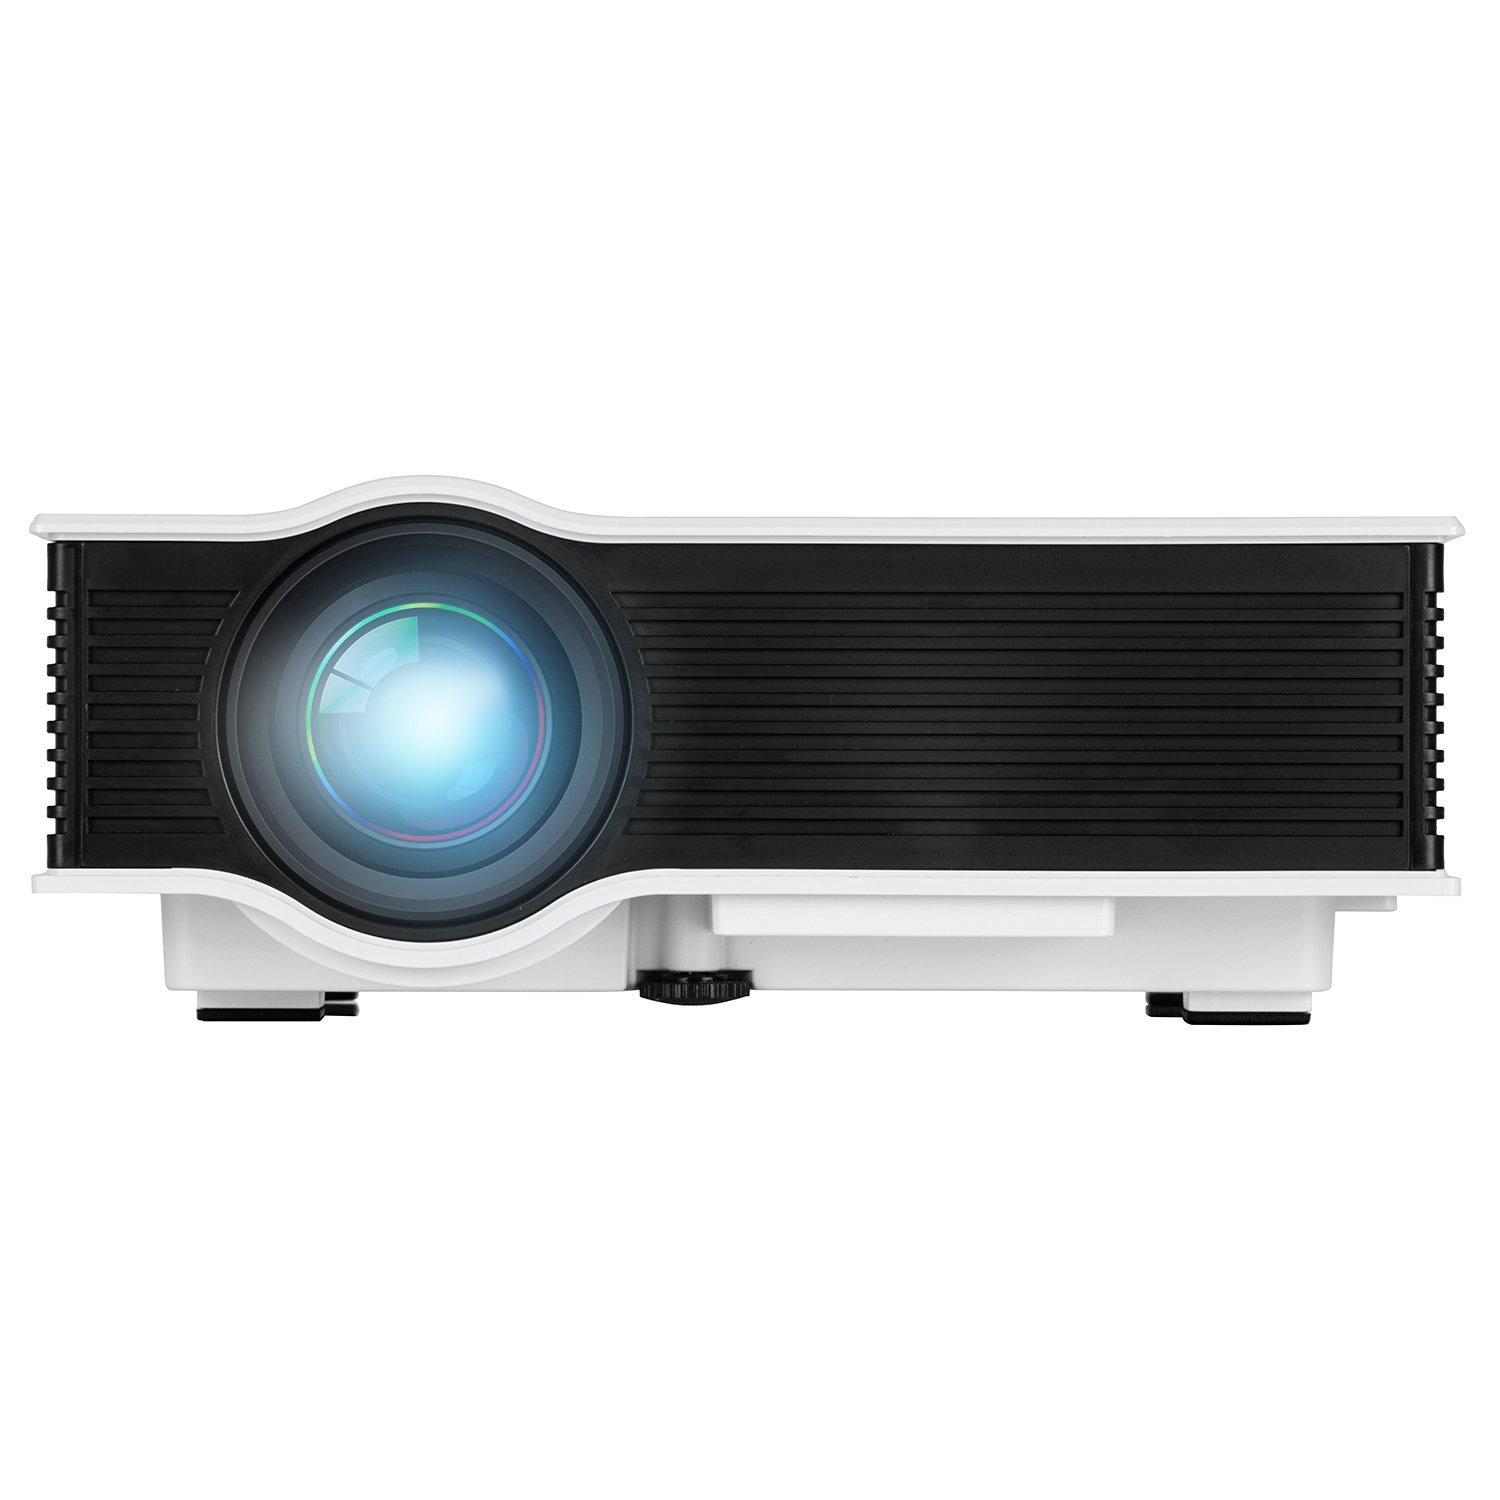 """LED Projector (Warranty Included), ERISAN Updated Full Color 130"""" Image Pro Mini LCD LED Portable Projector For Home Theater Cinema Game-Support HD 1080P Video/800 Lumens IP/IR/USB/SD/HDMI"""